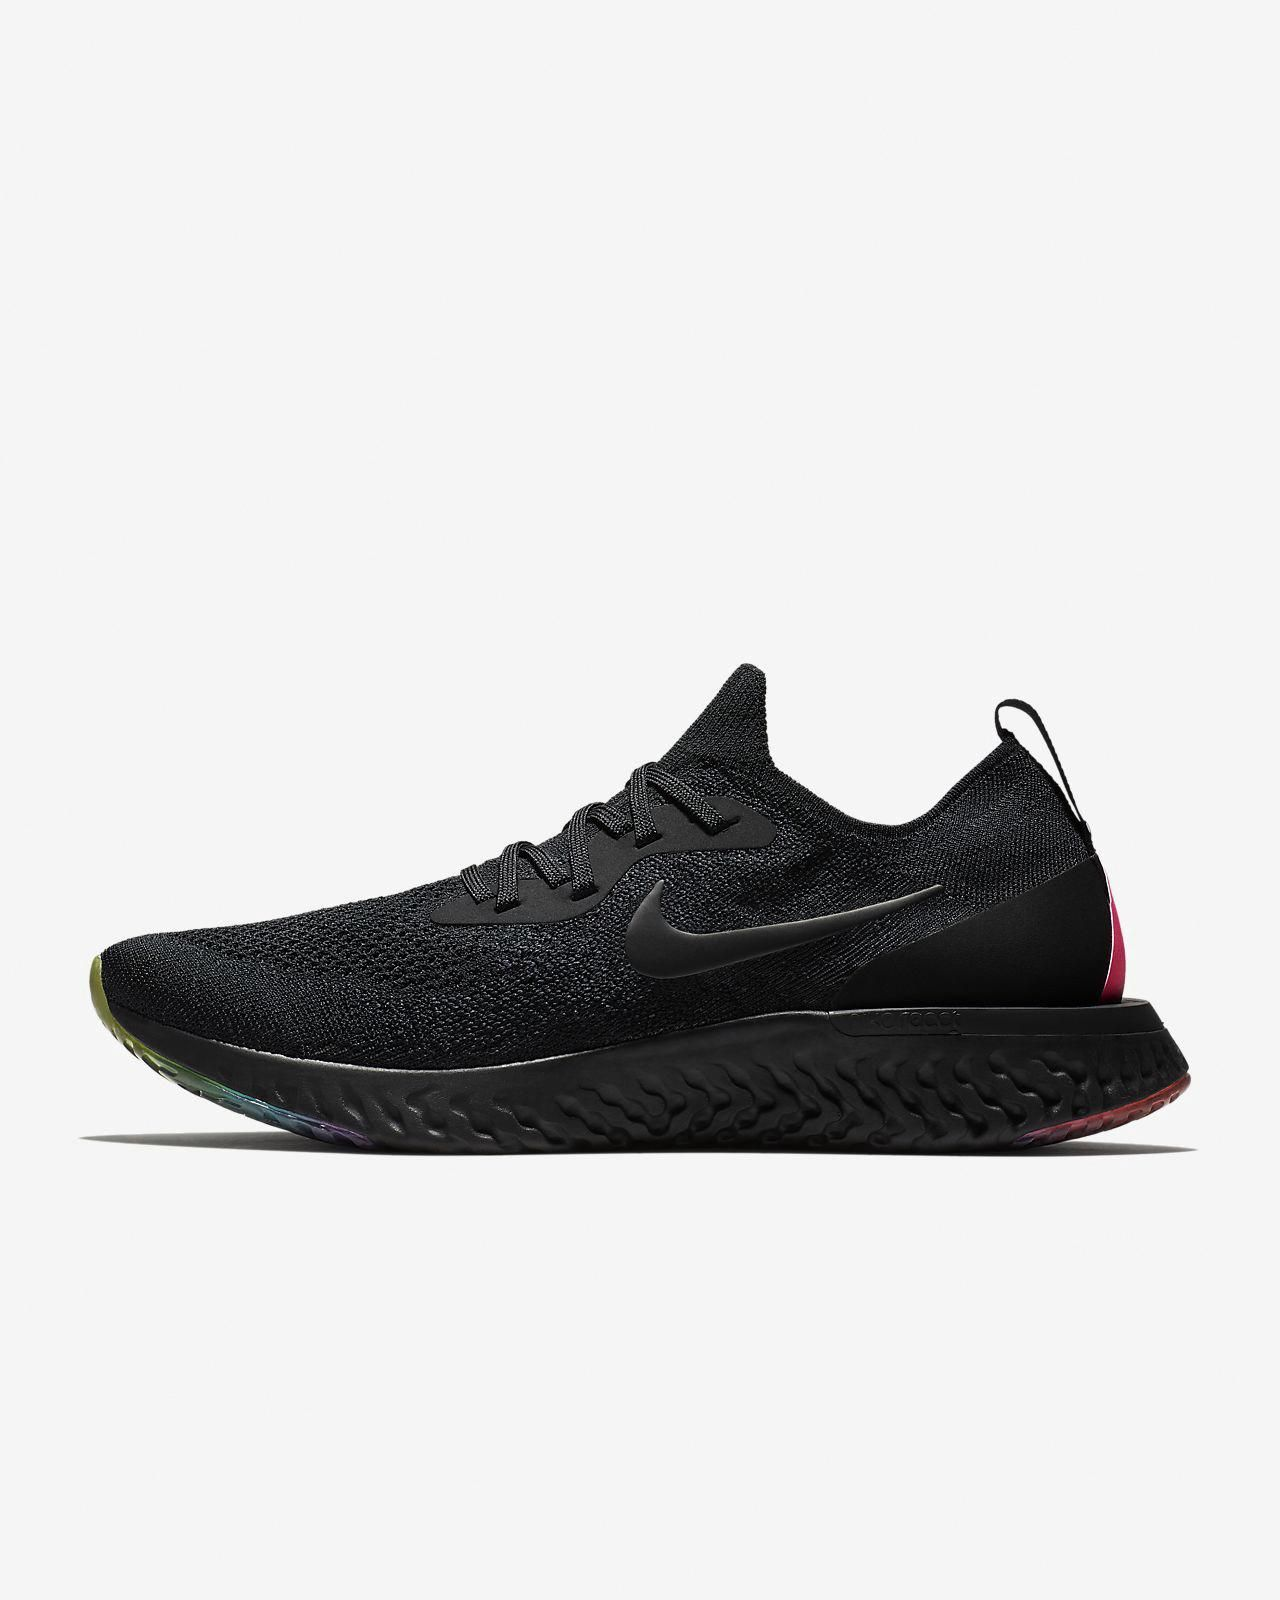 be57ad6c0c13 Nike Epic React Flyknit Betrue Men s Running Shoe - M 11.5   W 13   trailrunningshoes